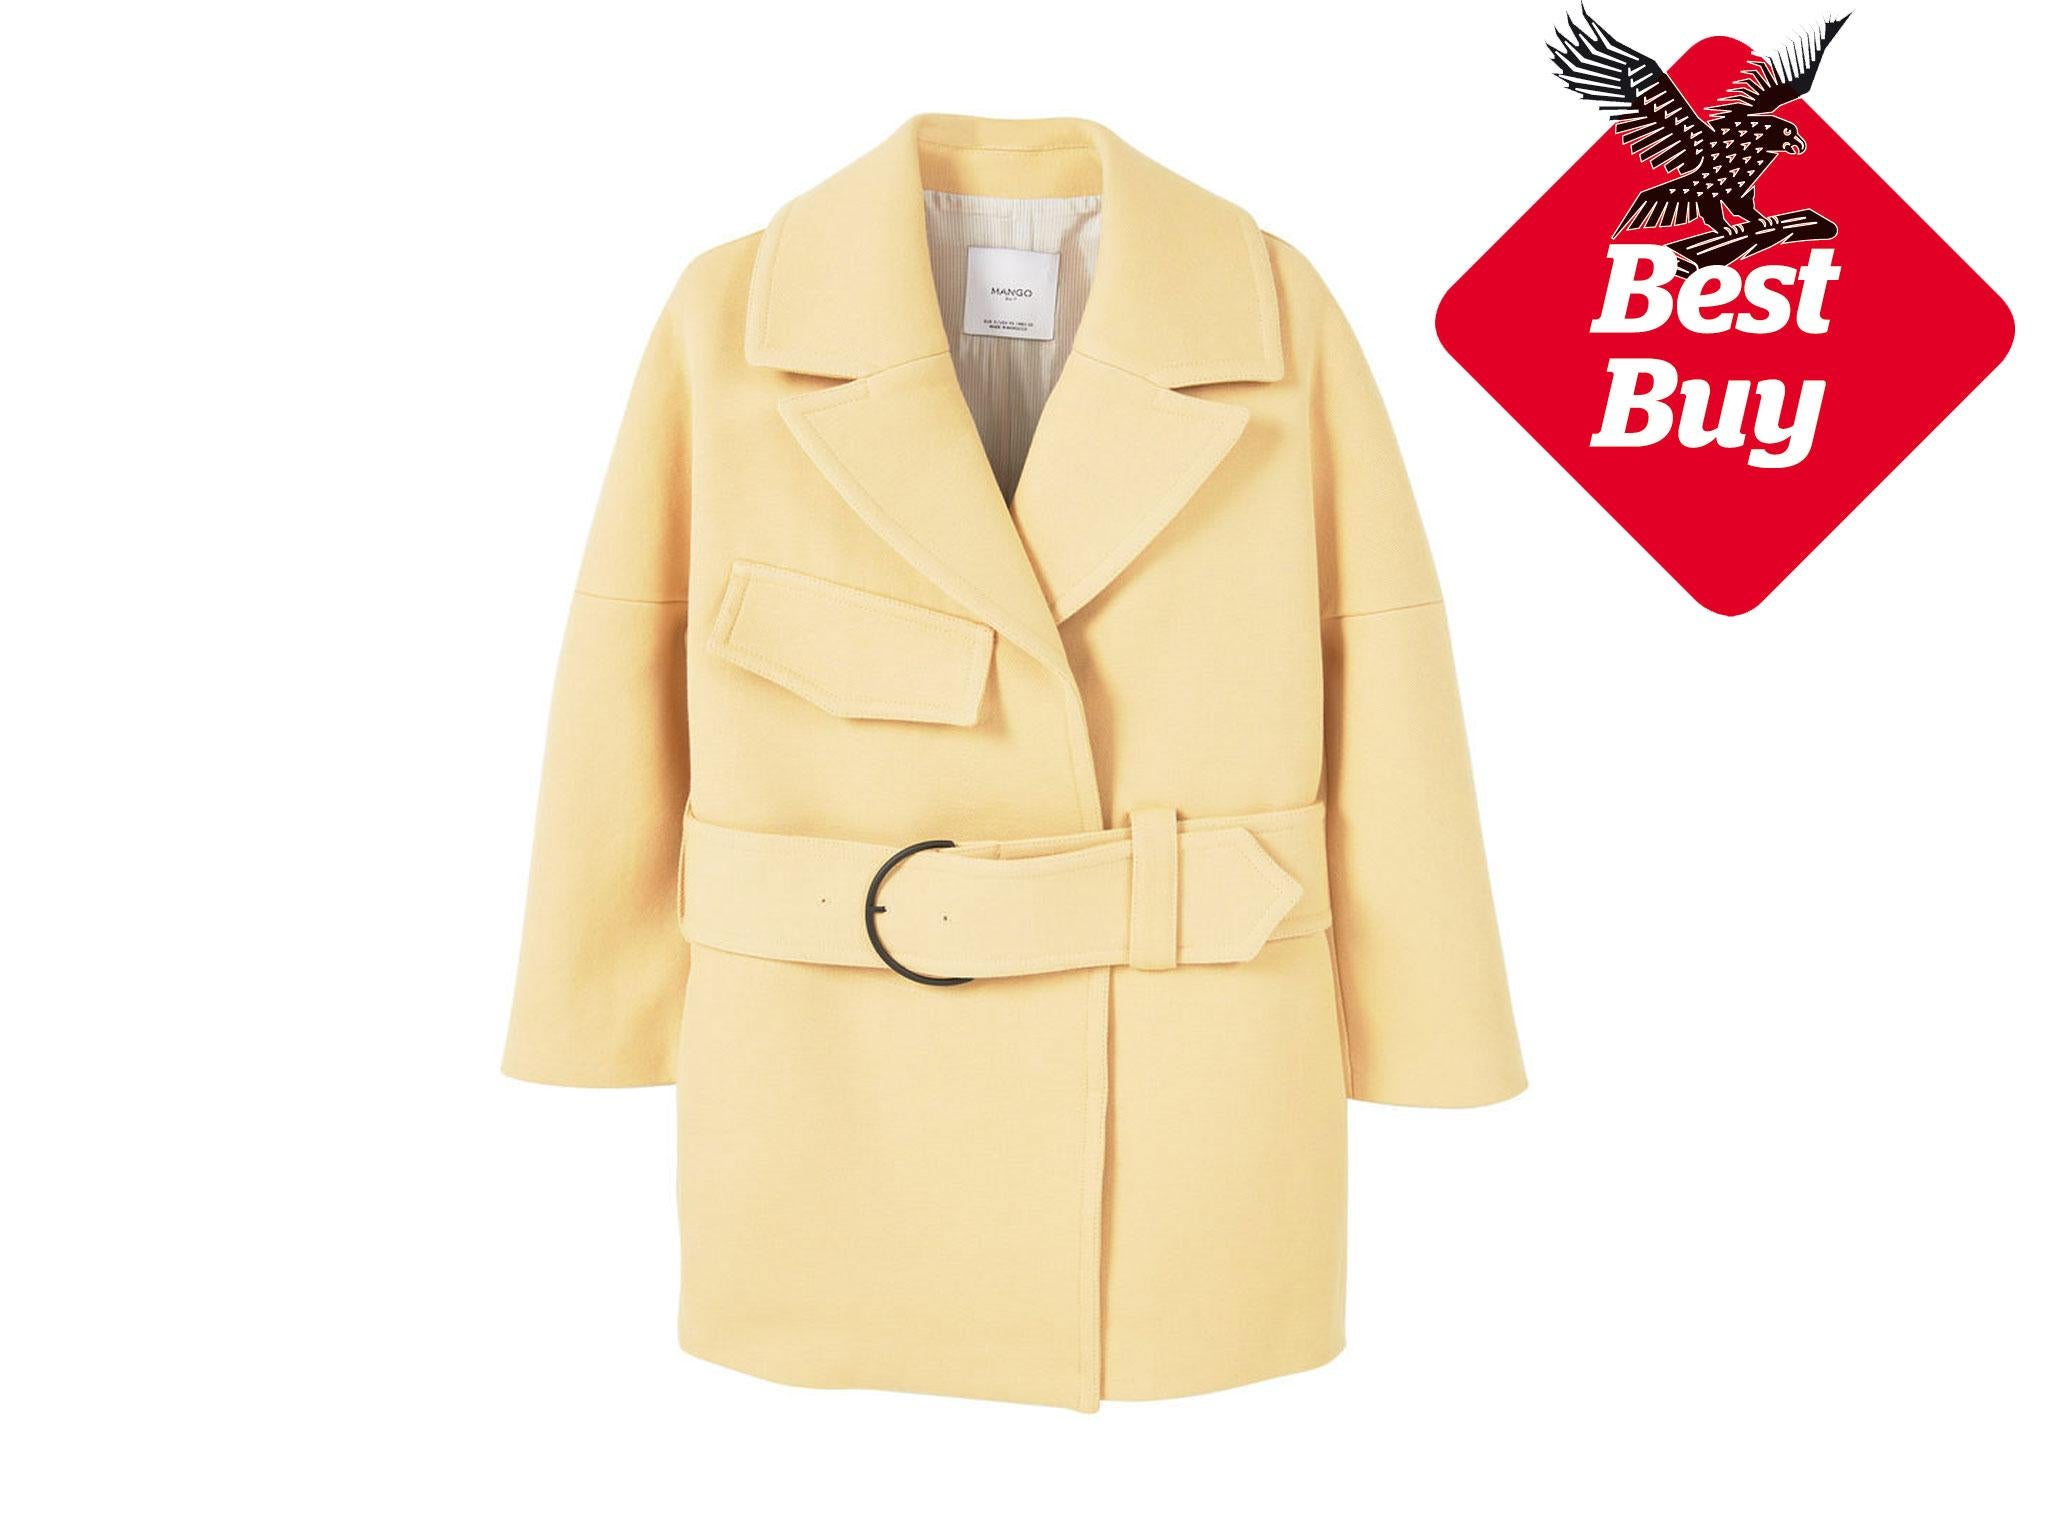 d12f02ee2 10 best spring jackets for women